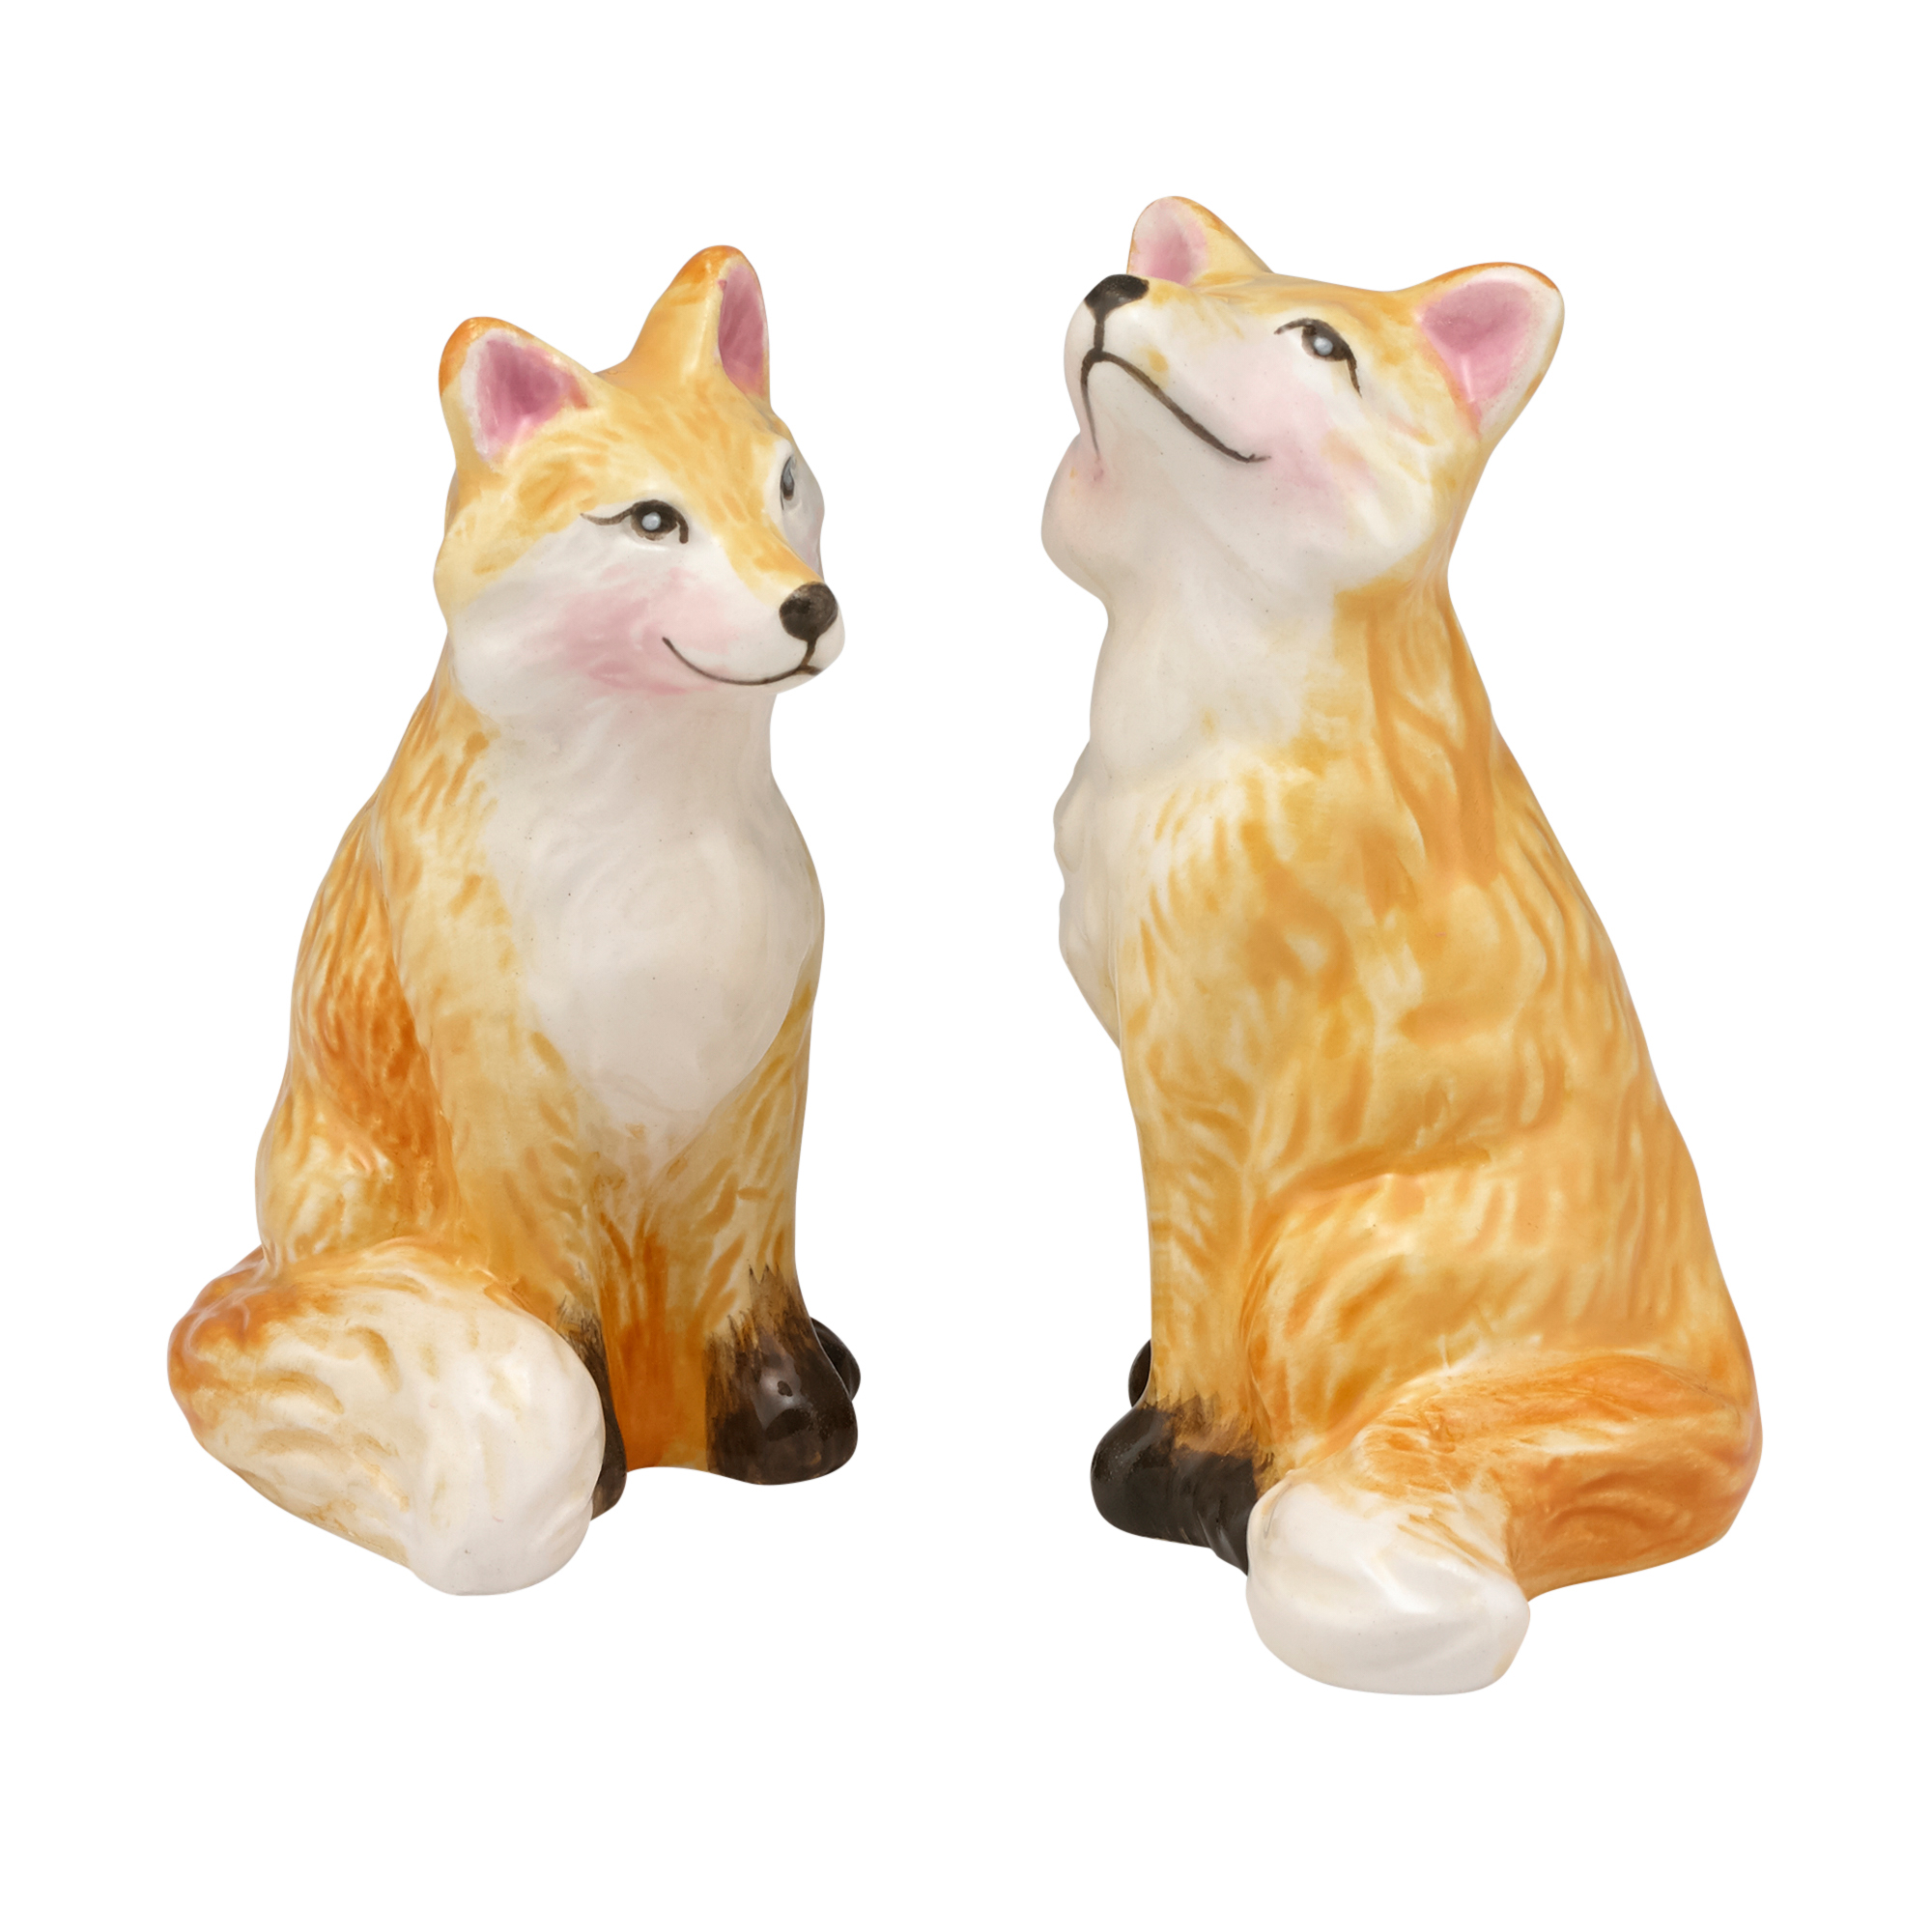 Cath-Kidston-Fox-Salt-and-Pepper-Shakers.jpg